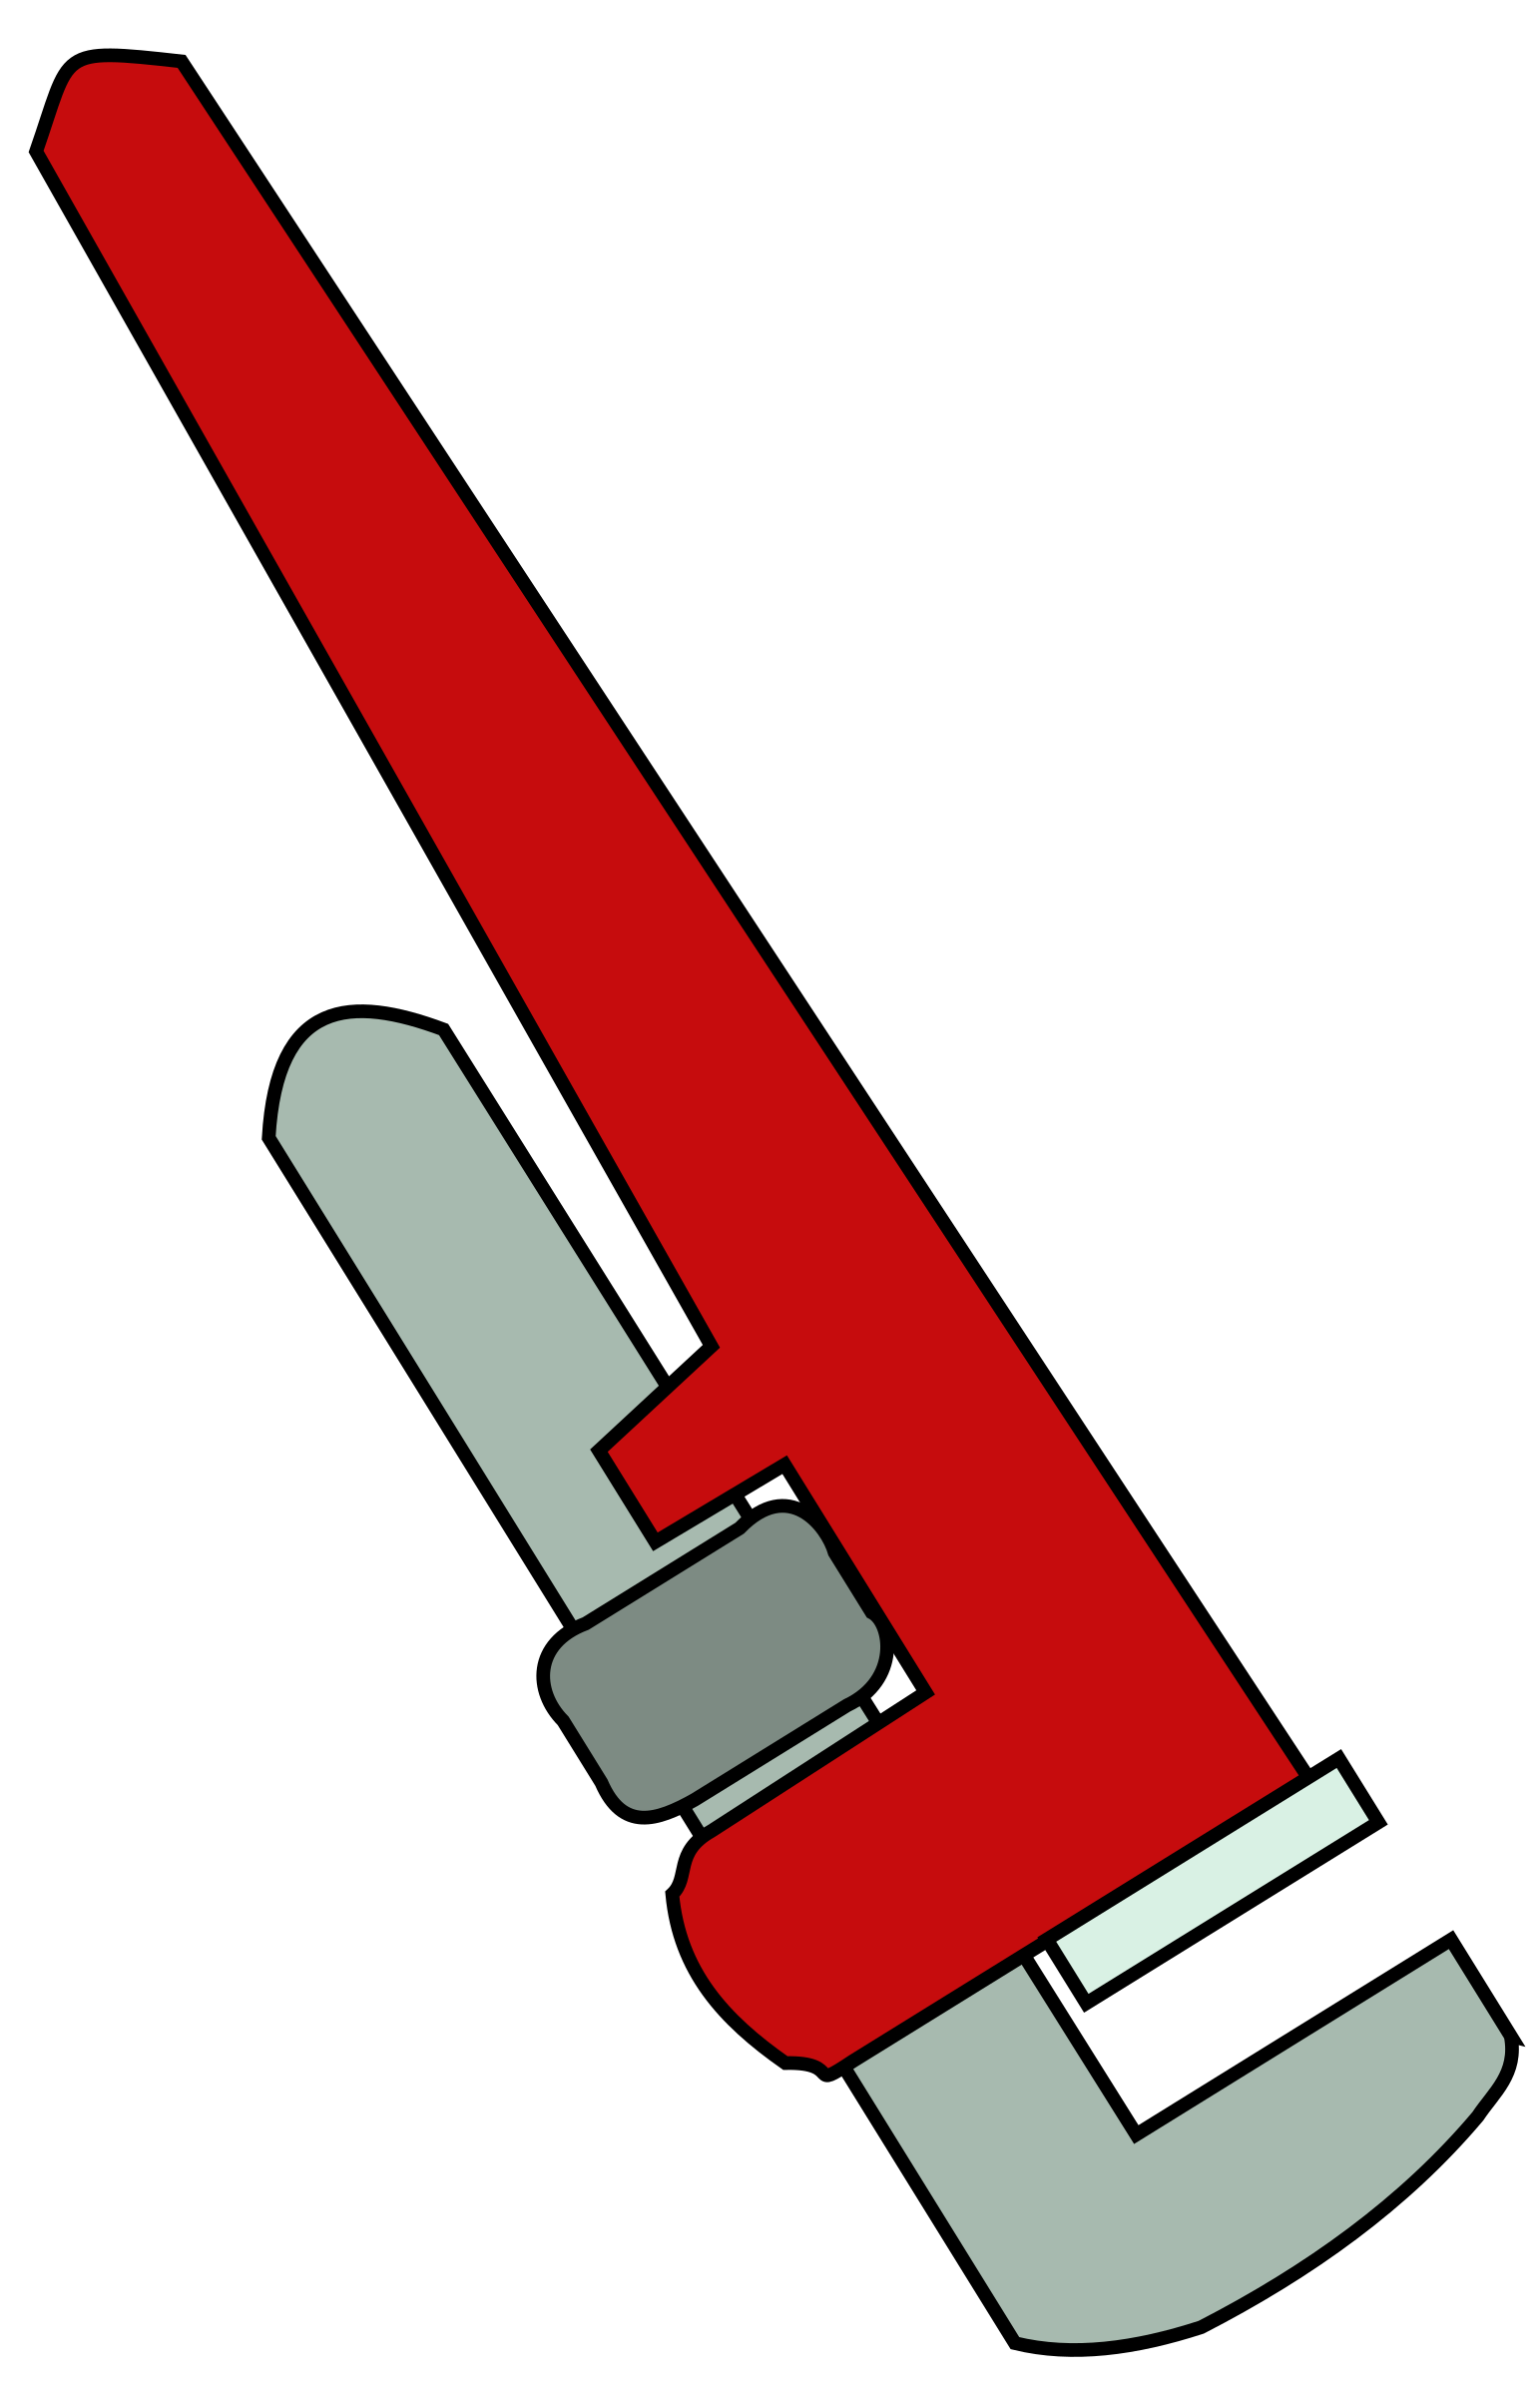 Pipe wrench clipground. Screwdriver clipart cartoon